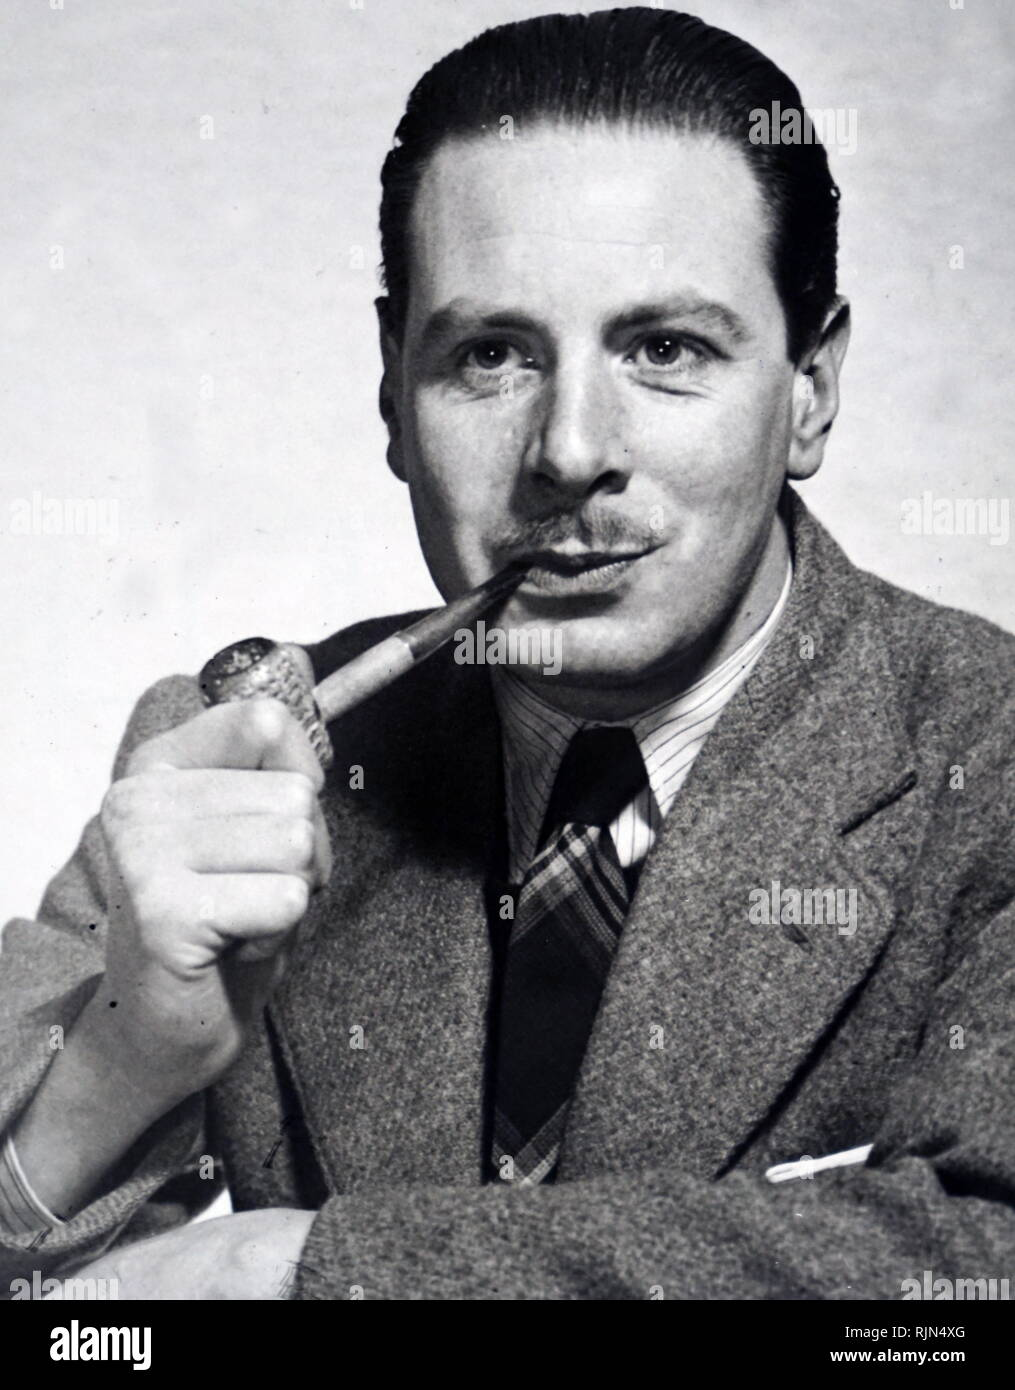 Henry Patterson (b. 1929), British spy and thriller novelist with the pen name Jack Higgins - Stock Image